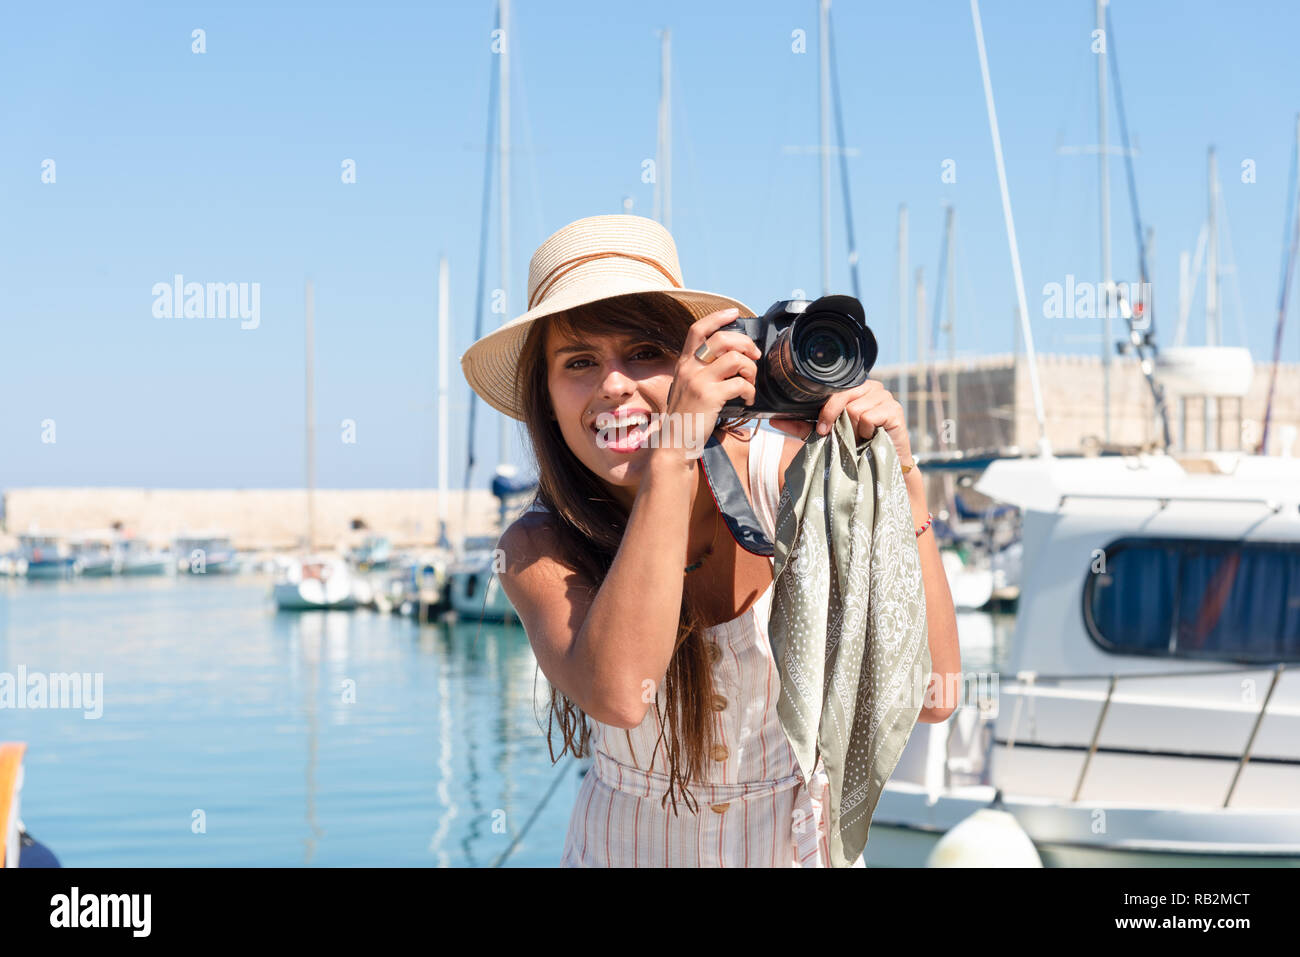 Traveling tourist woman on vacation in Heraklion Crete visiting the port. Lovely elegant girl takes pictures at the famous Mediterranean Venetian port - Stock Image